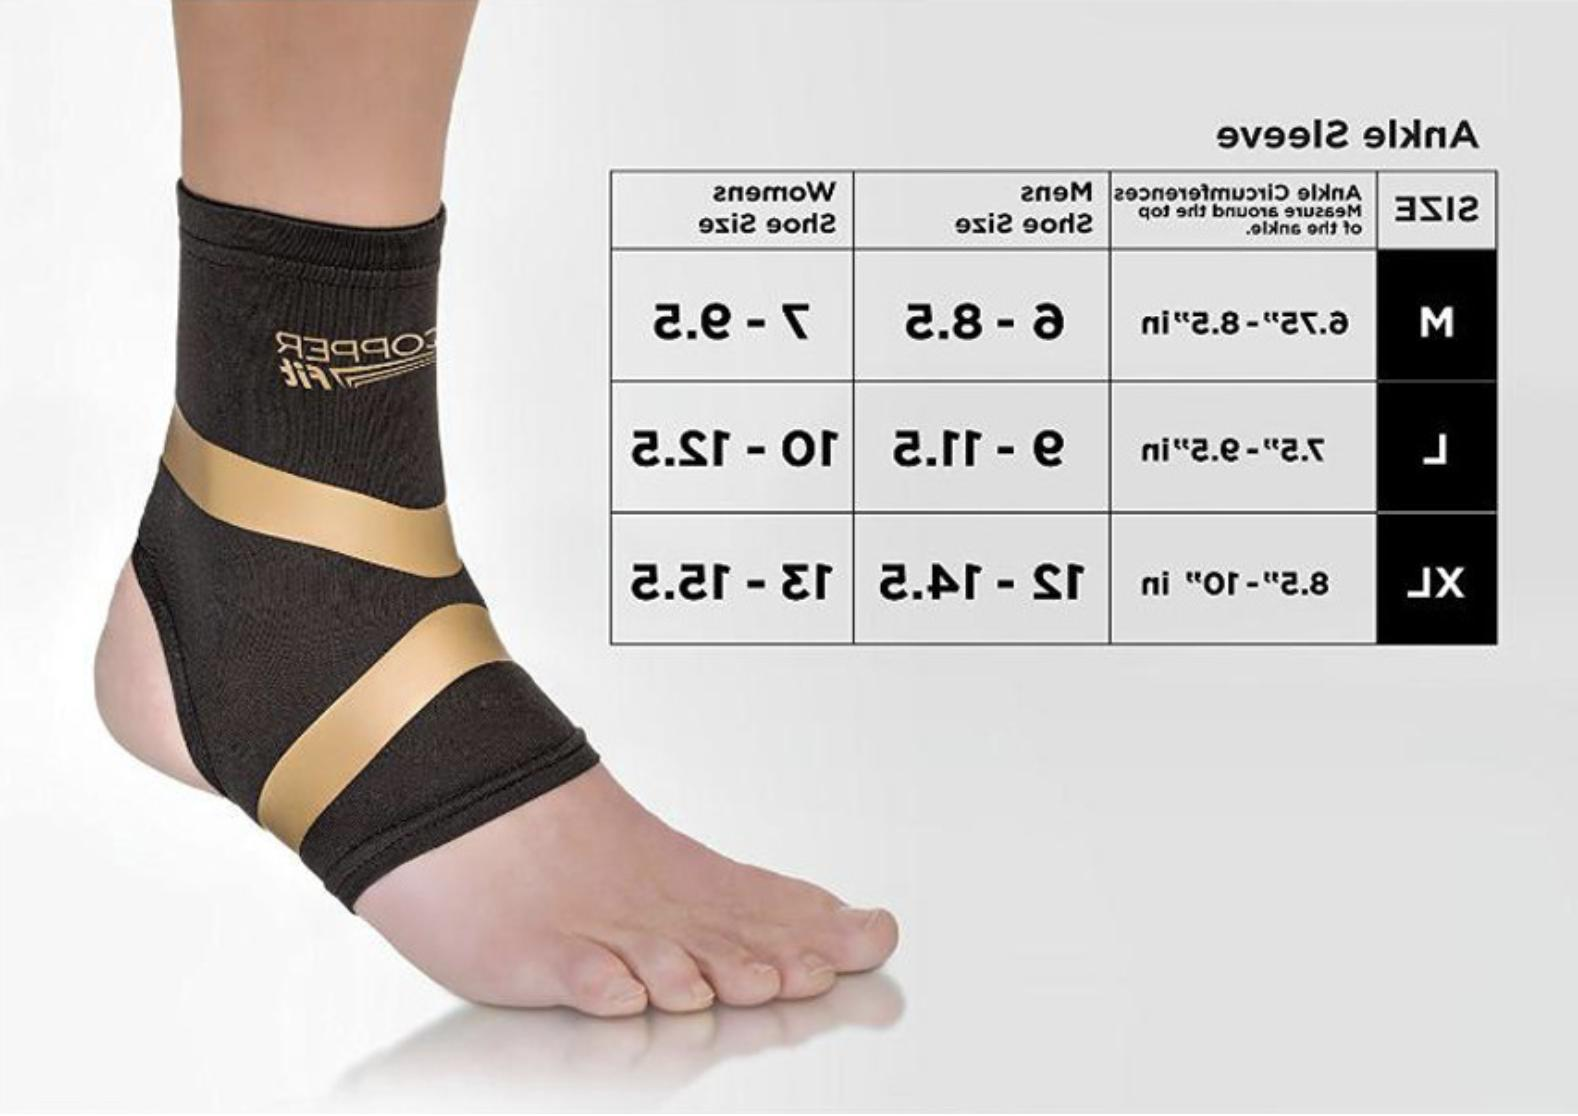 copper fit pro compression ankle support arthritis